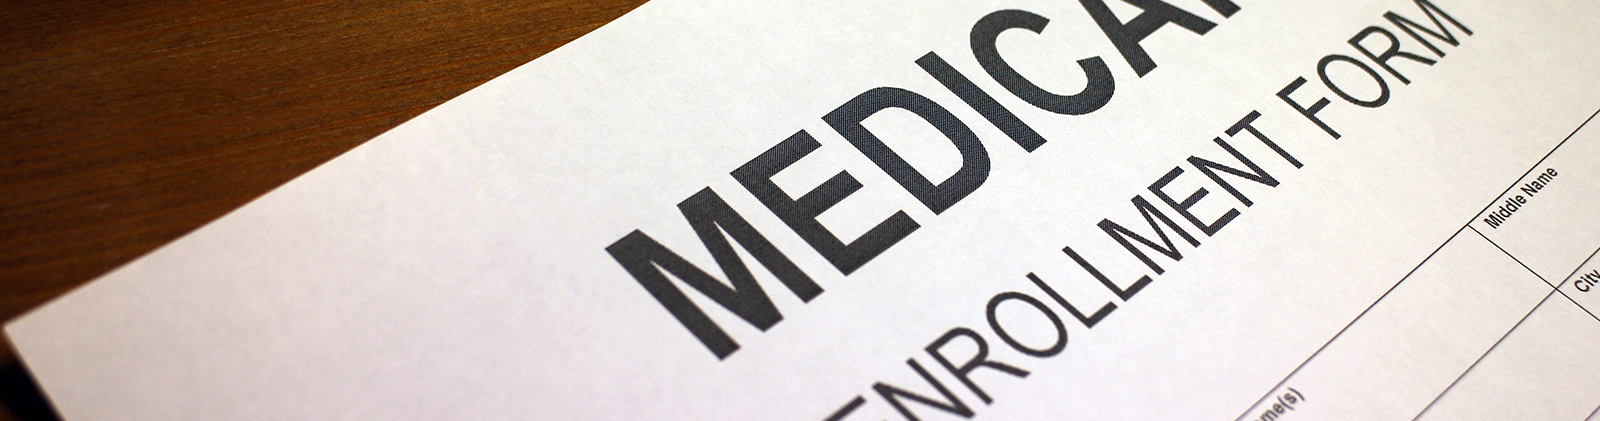 Medicare Enrollment Dates – When Can You Sign Up?